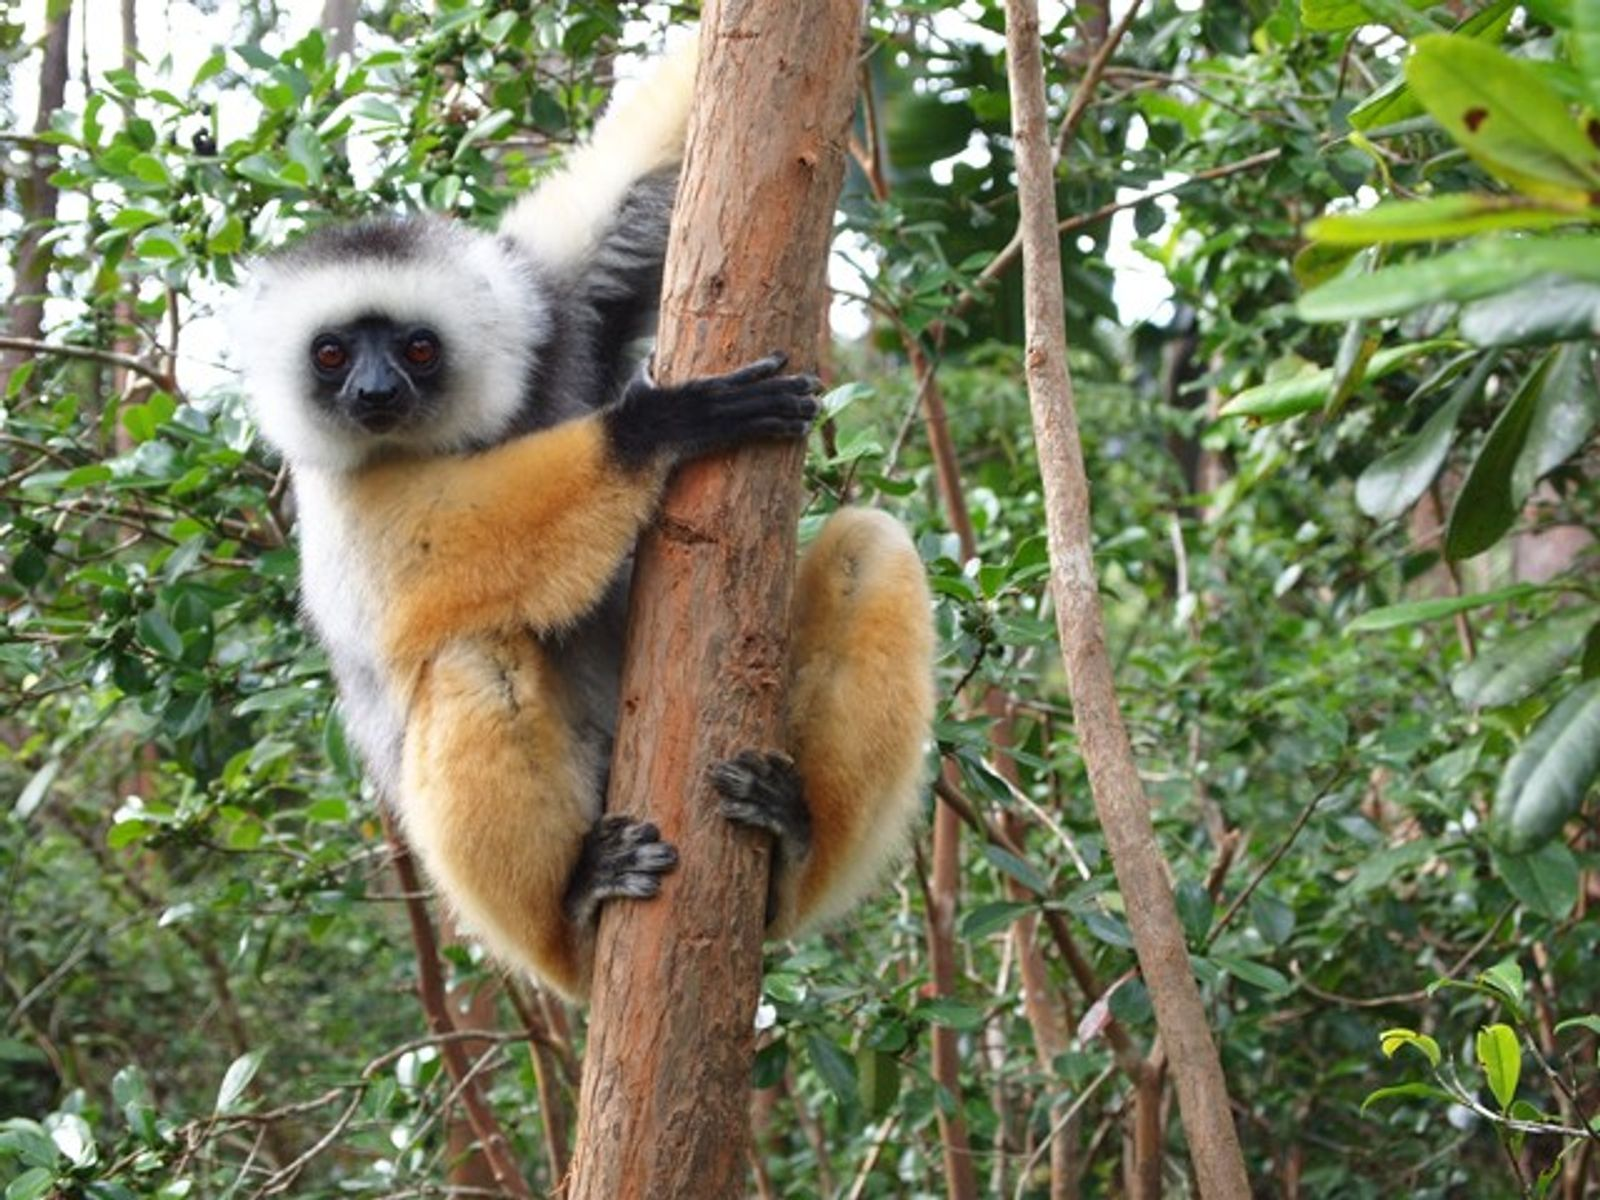 Madagascar: Land of lemurs